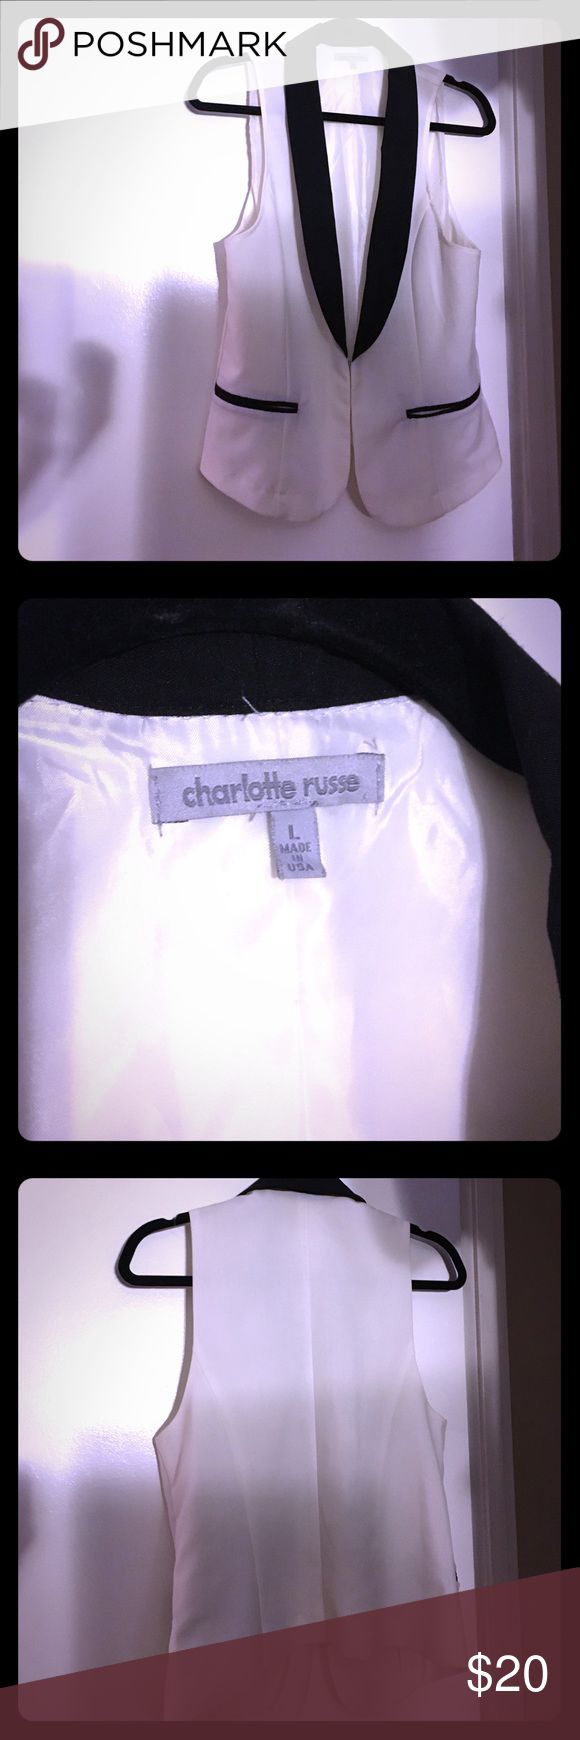 Black and white suit vest Casual & super cute black and white vest only worn once so in like new condition! Charlotte Russe Tops